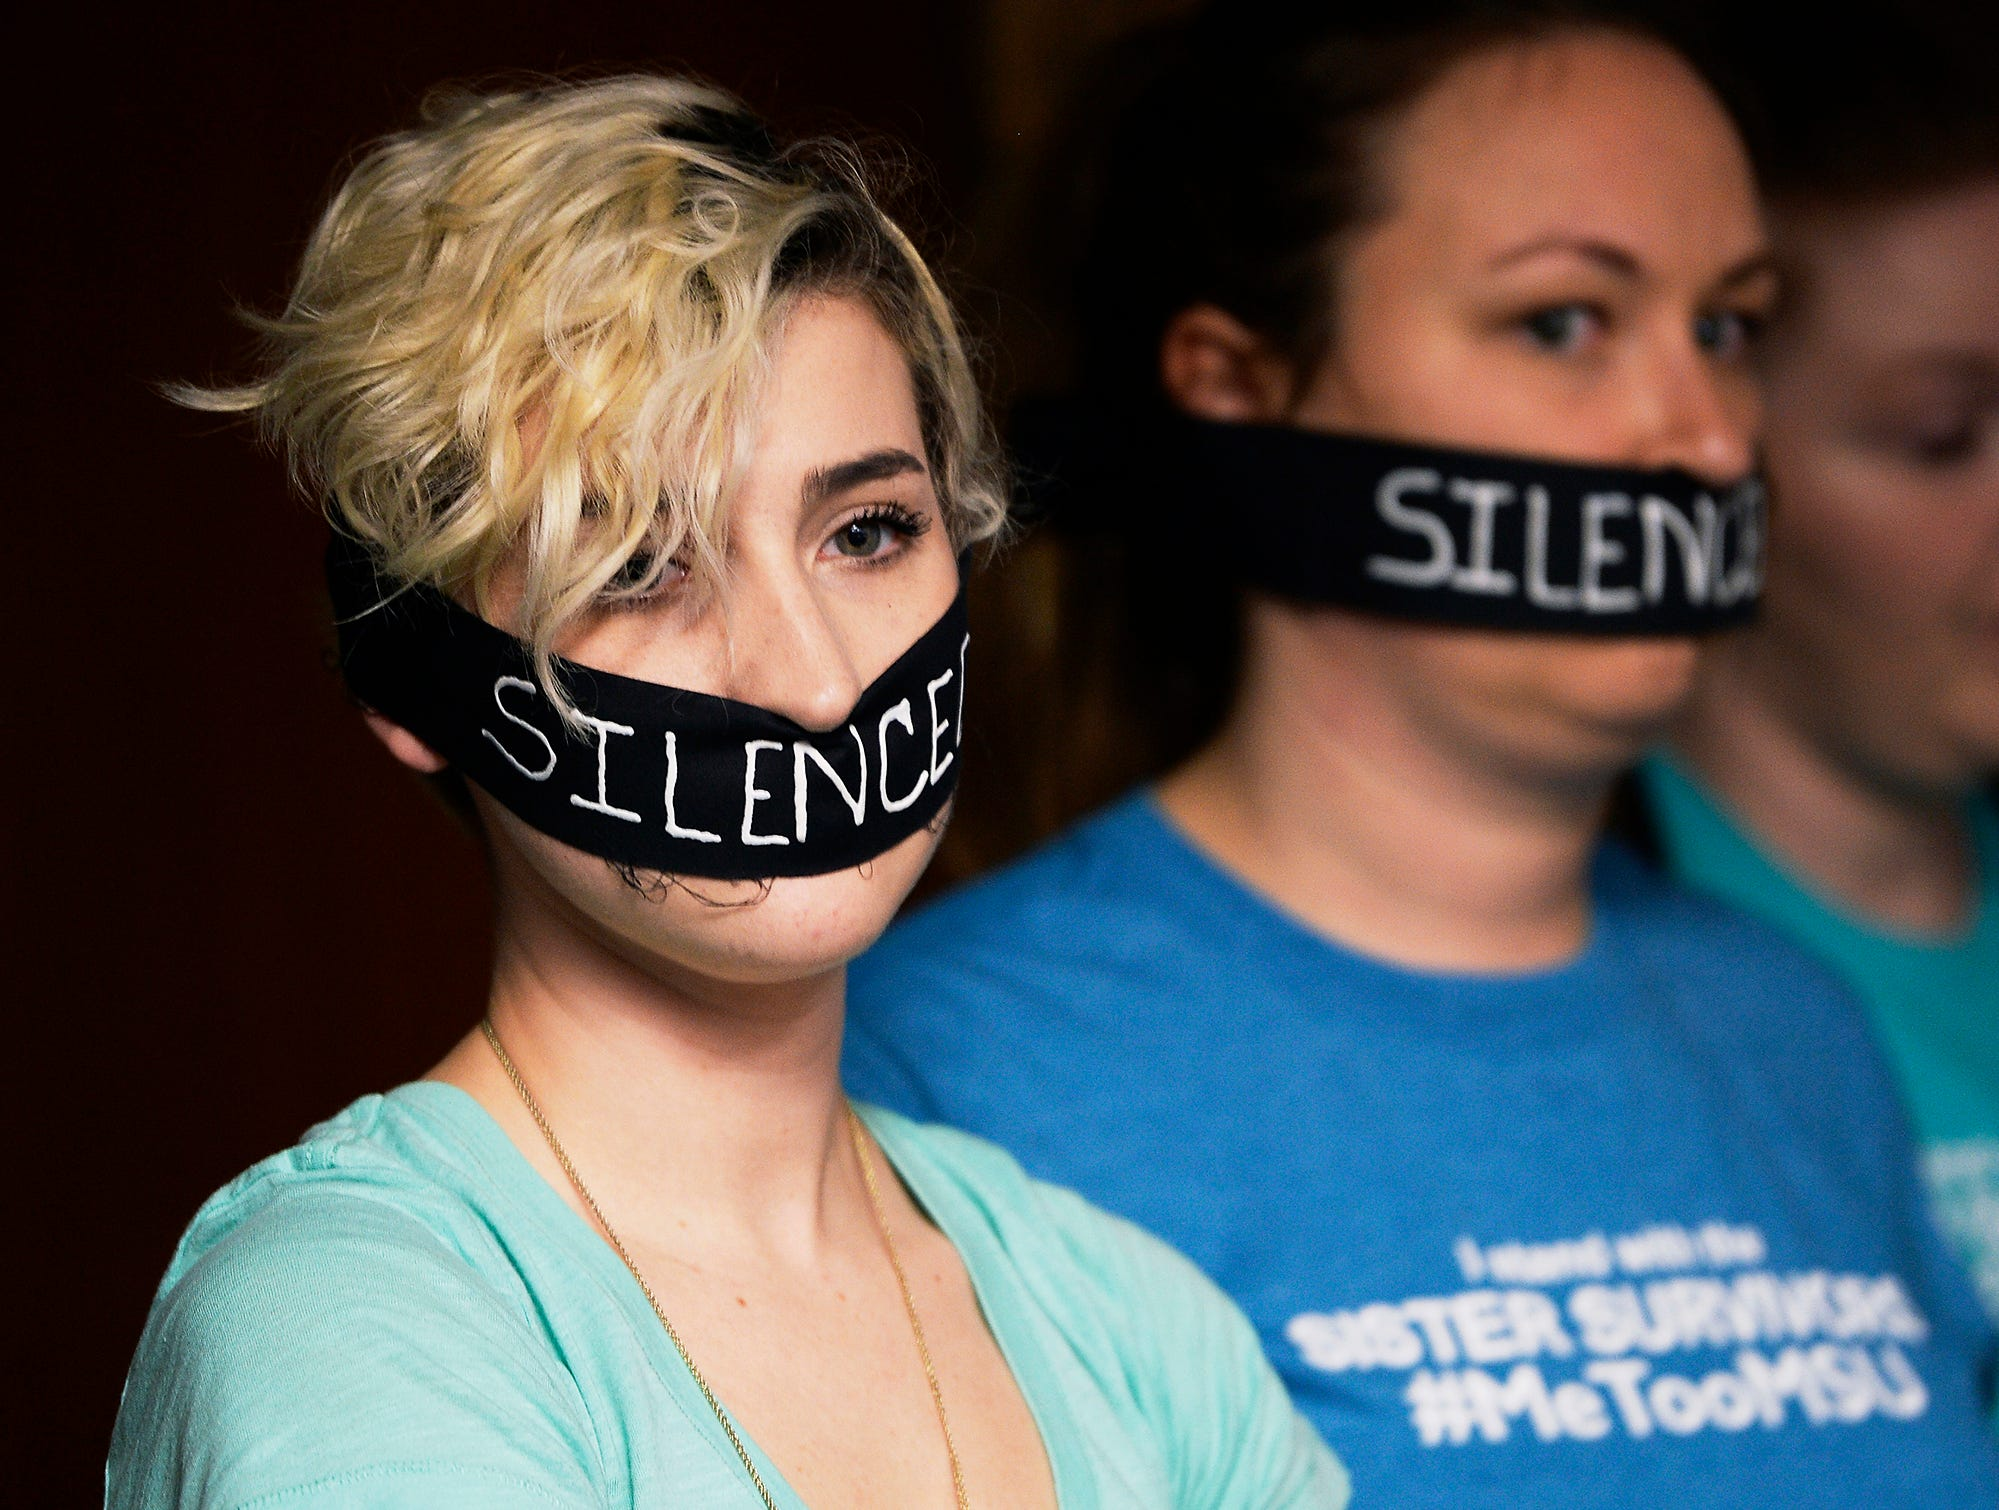 Survivors of sexual assaults by former MSU doctor Larry Nassar, Amanda Thomashow, left, 28, and Alex Neil-Sevier, 29, wear silence gags while listening to the Michigan State University Board of Trustees meeting, April 13, 2018, in East Lansing. They were unhappy that MSU president John Engler cut short another survivor's comments to MSU trustees on March 28.